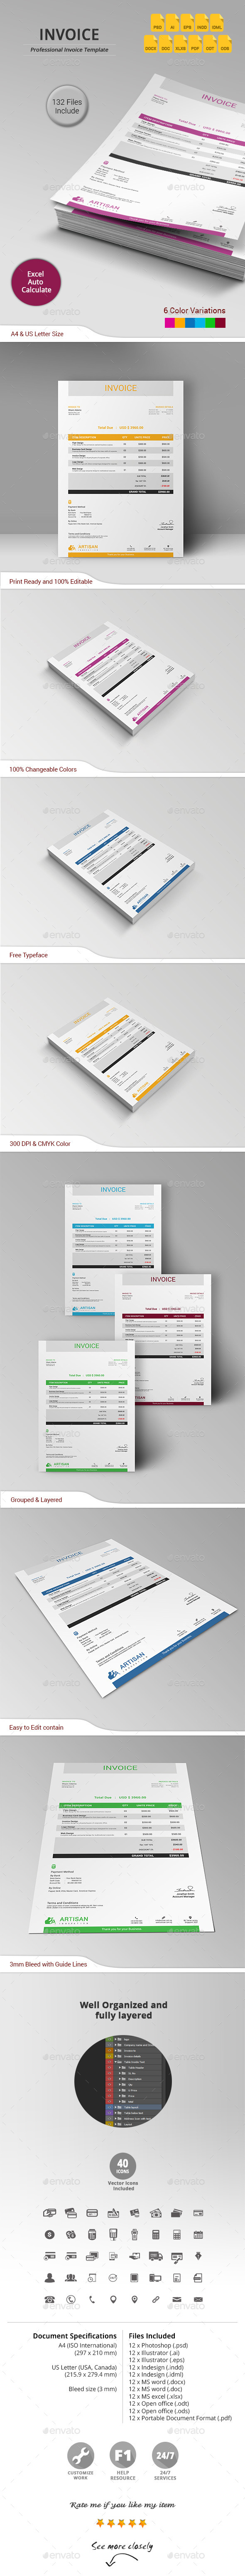 GraphicRiver Invoice 11206215